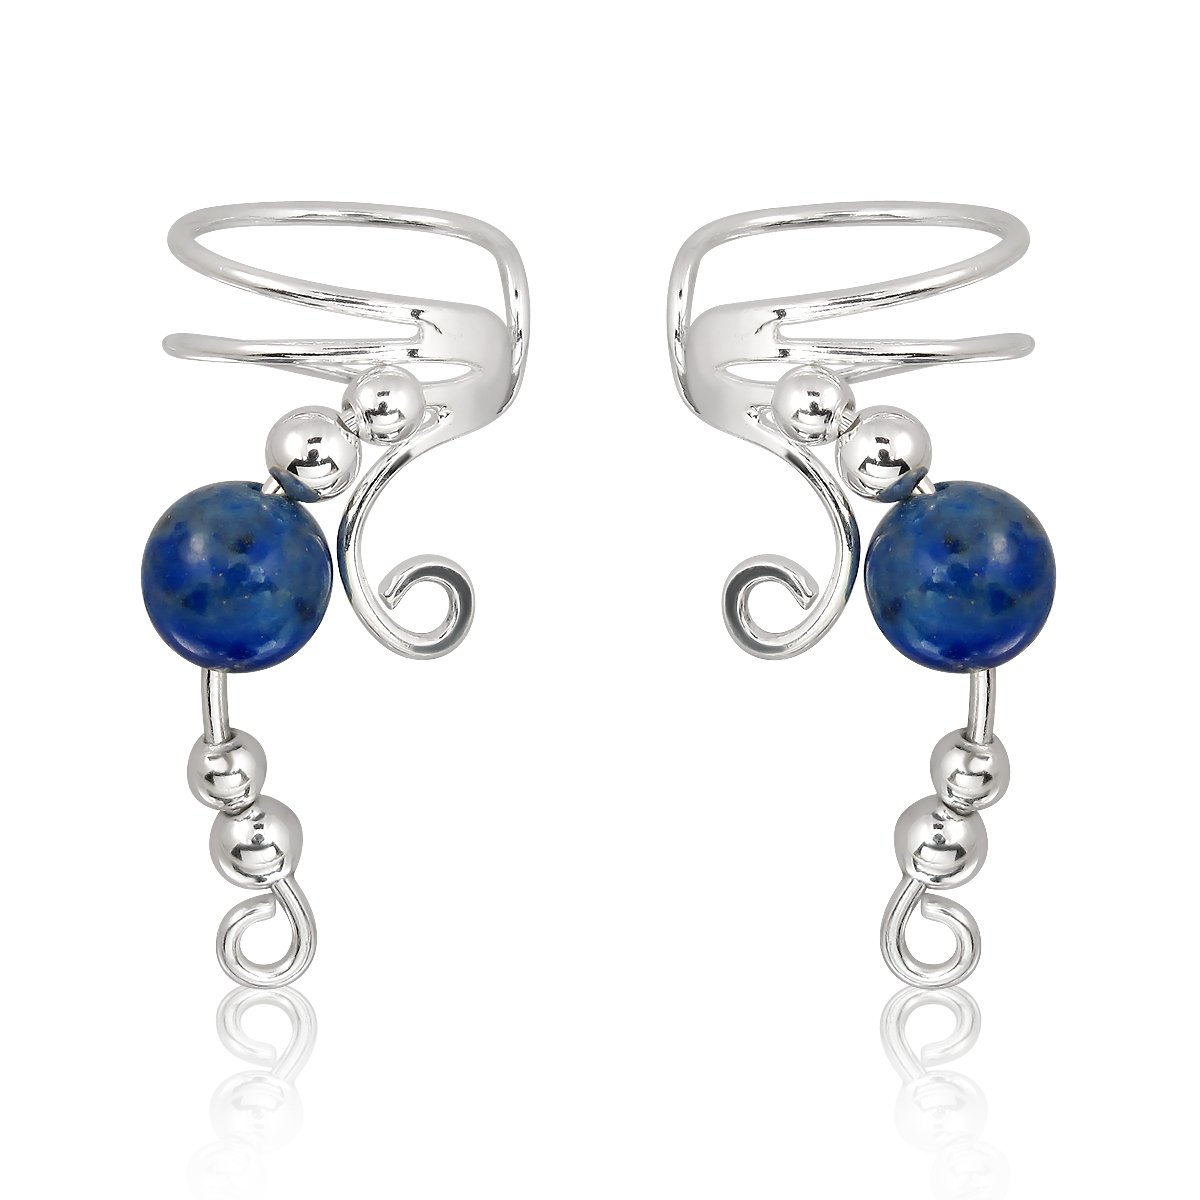 WithLoveSilver 925 Sterling Silver Wire Ear Cuff with Simulated Bead Earrings